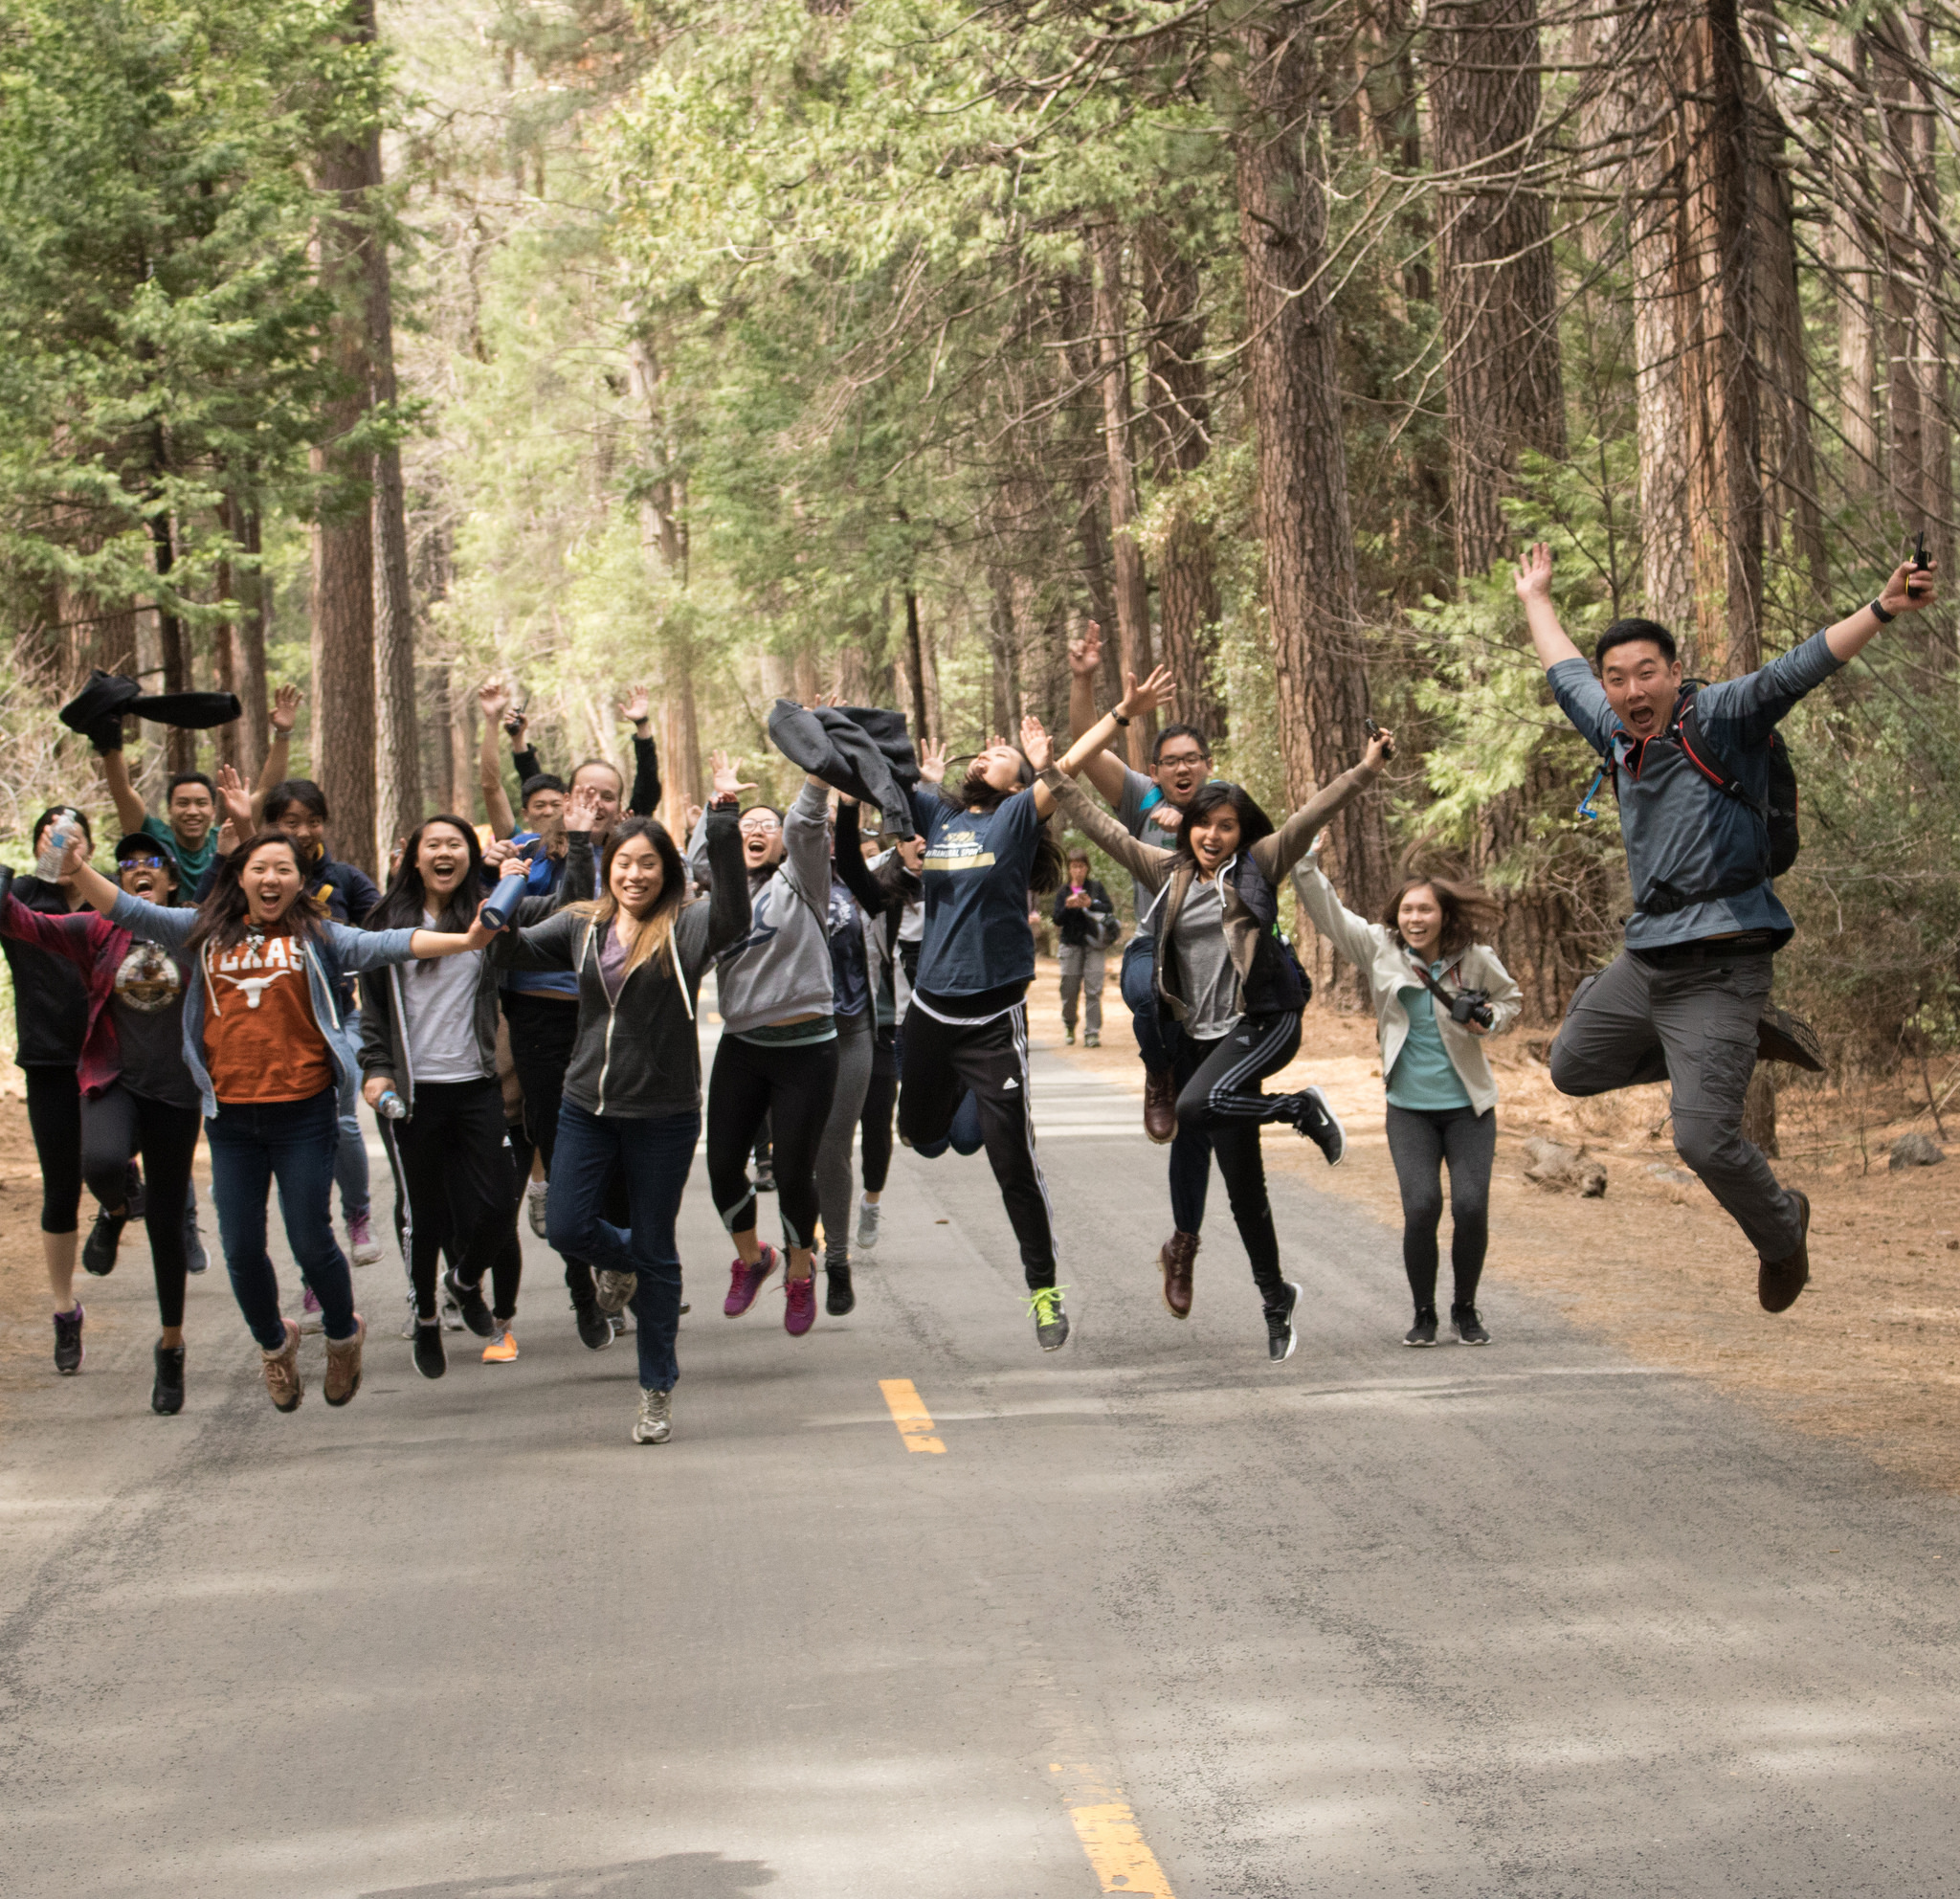 On the road to the hike with (mostly) successful jump picture!